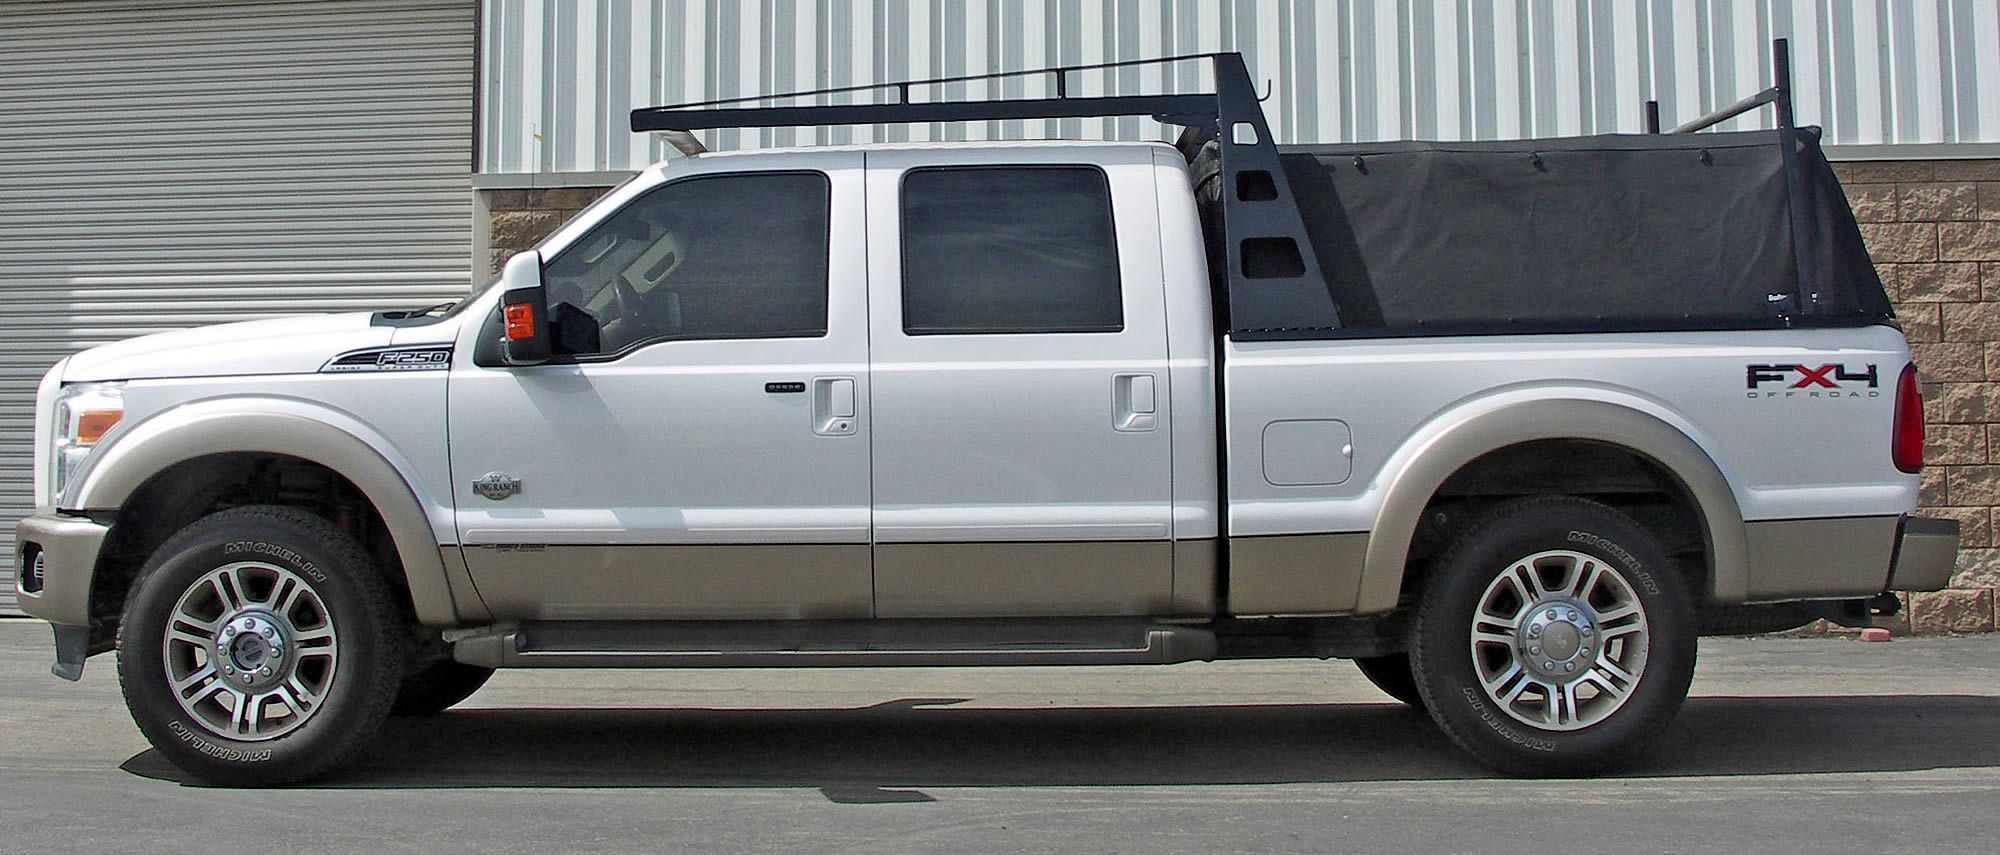 100 2003 nissan frontier roof rack what did you do to. Black Bedroom Furniture Sets. Home Design Ideas